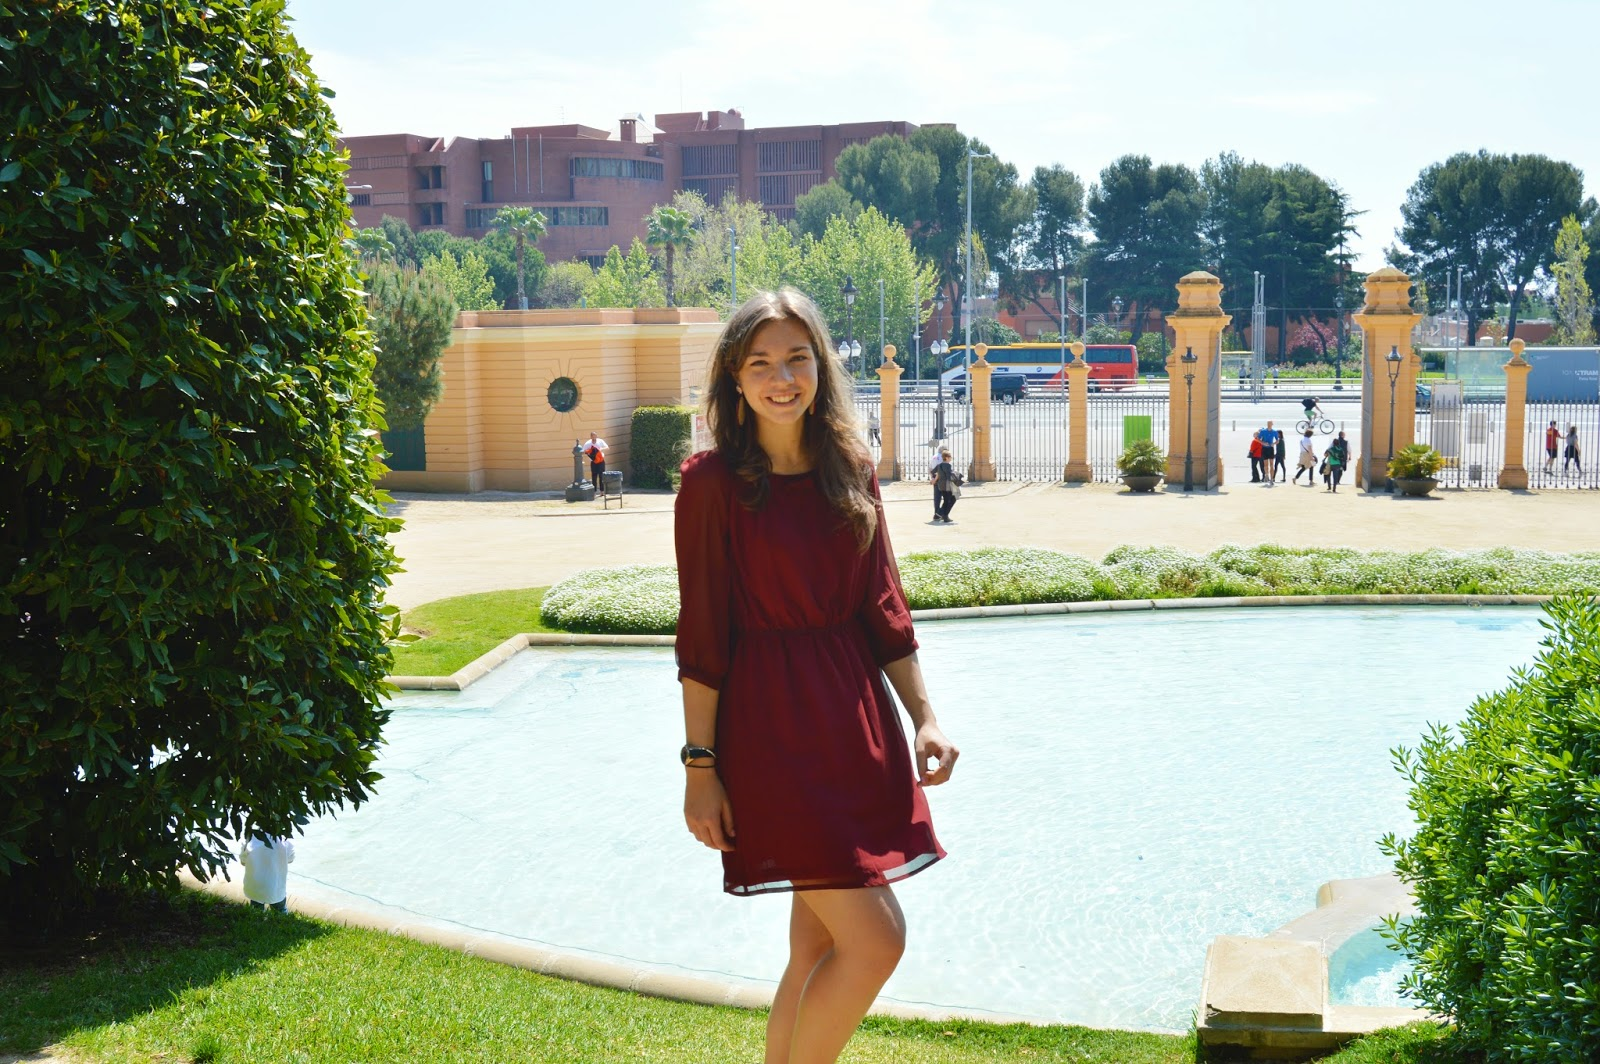 Burgundy outfit with a dress